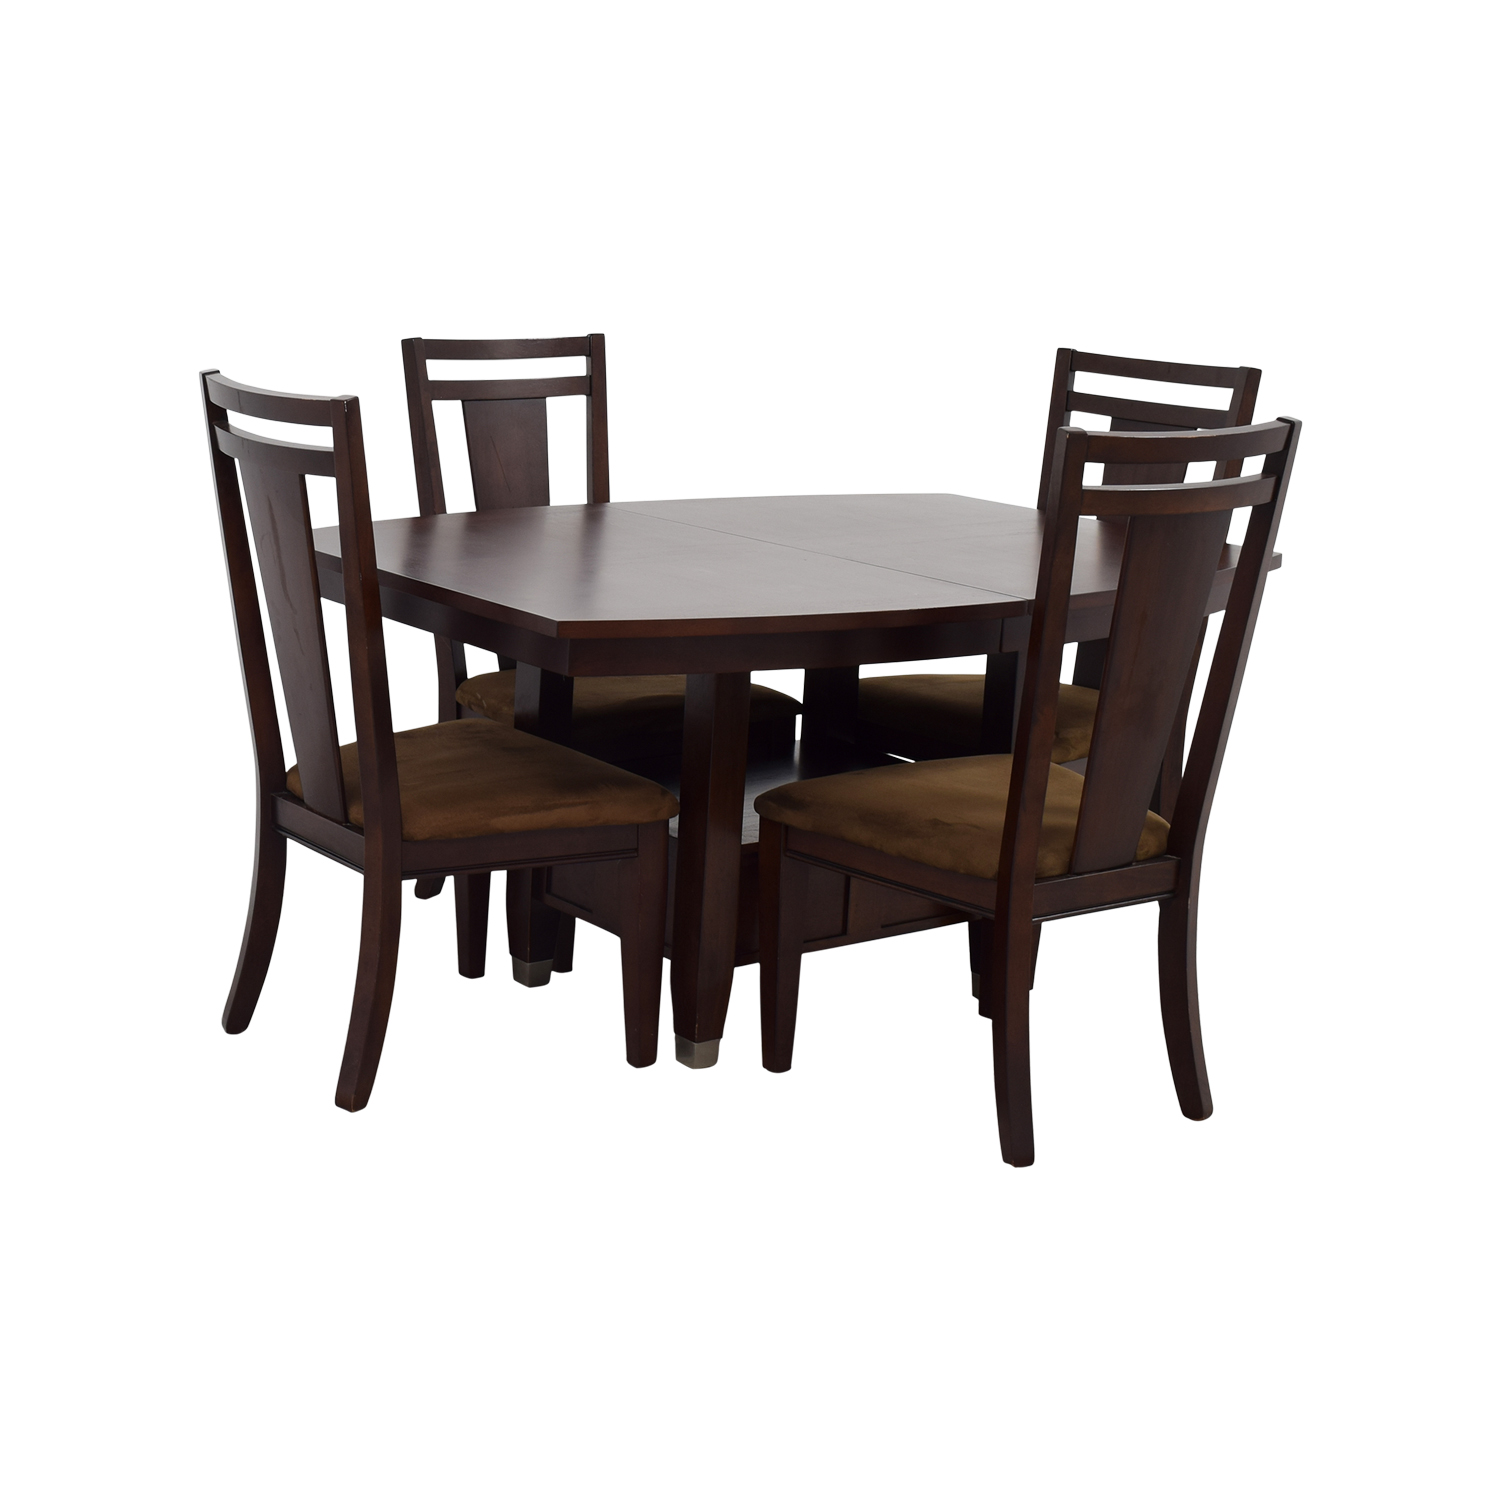 Broyhill Broyhill Wood Dining Table Set second hand